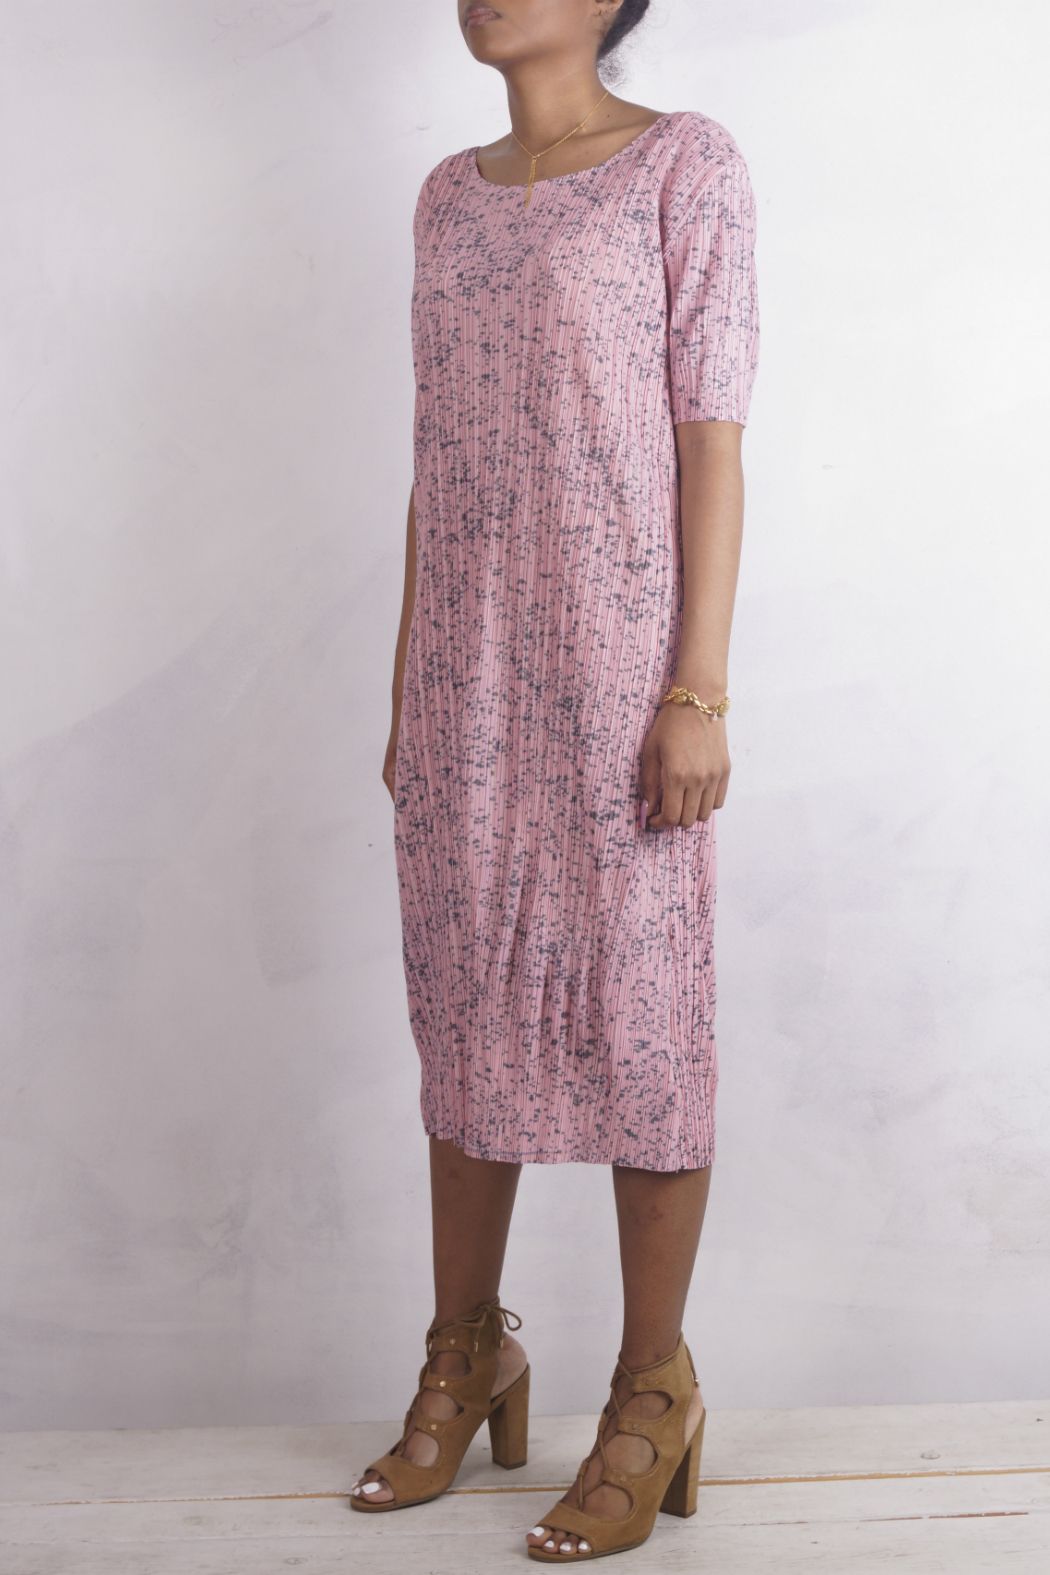 NU New York PINK POLKA PLEATS - Side Cropped Image